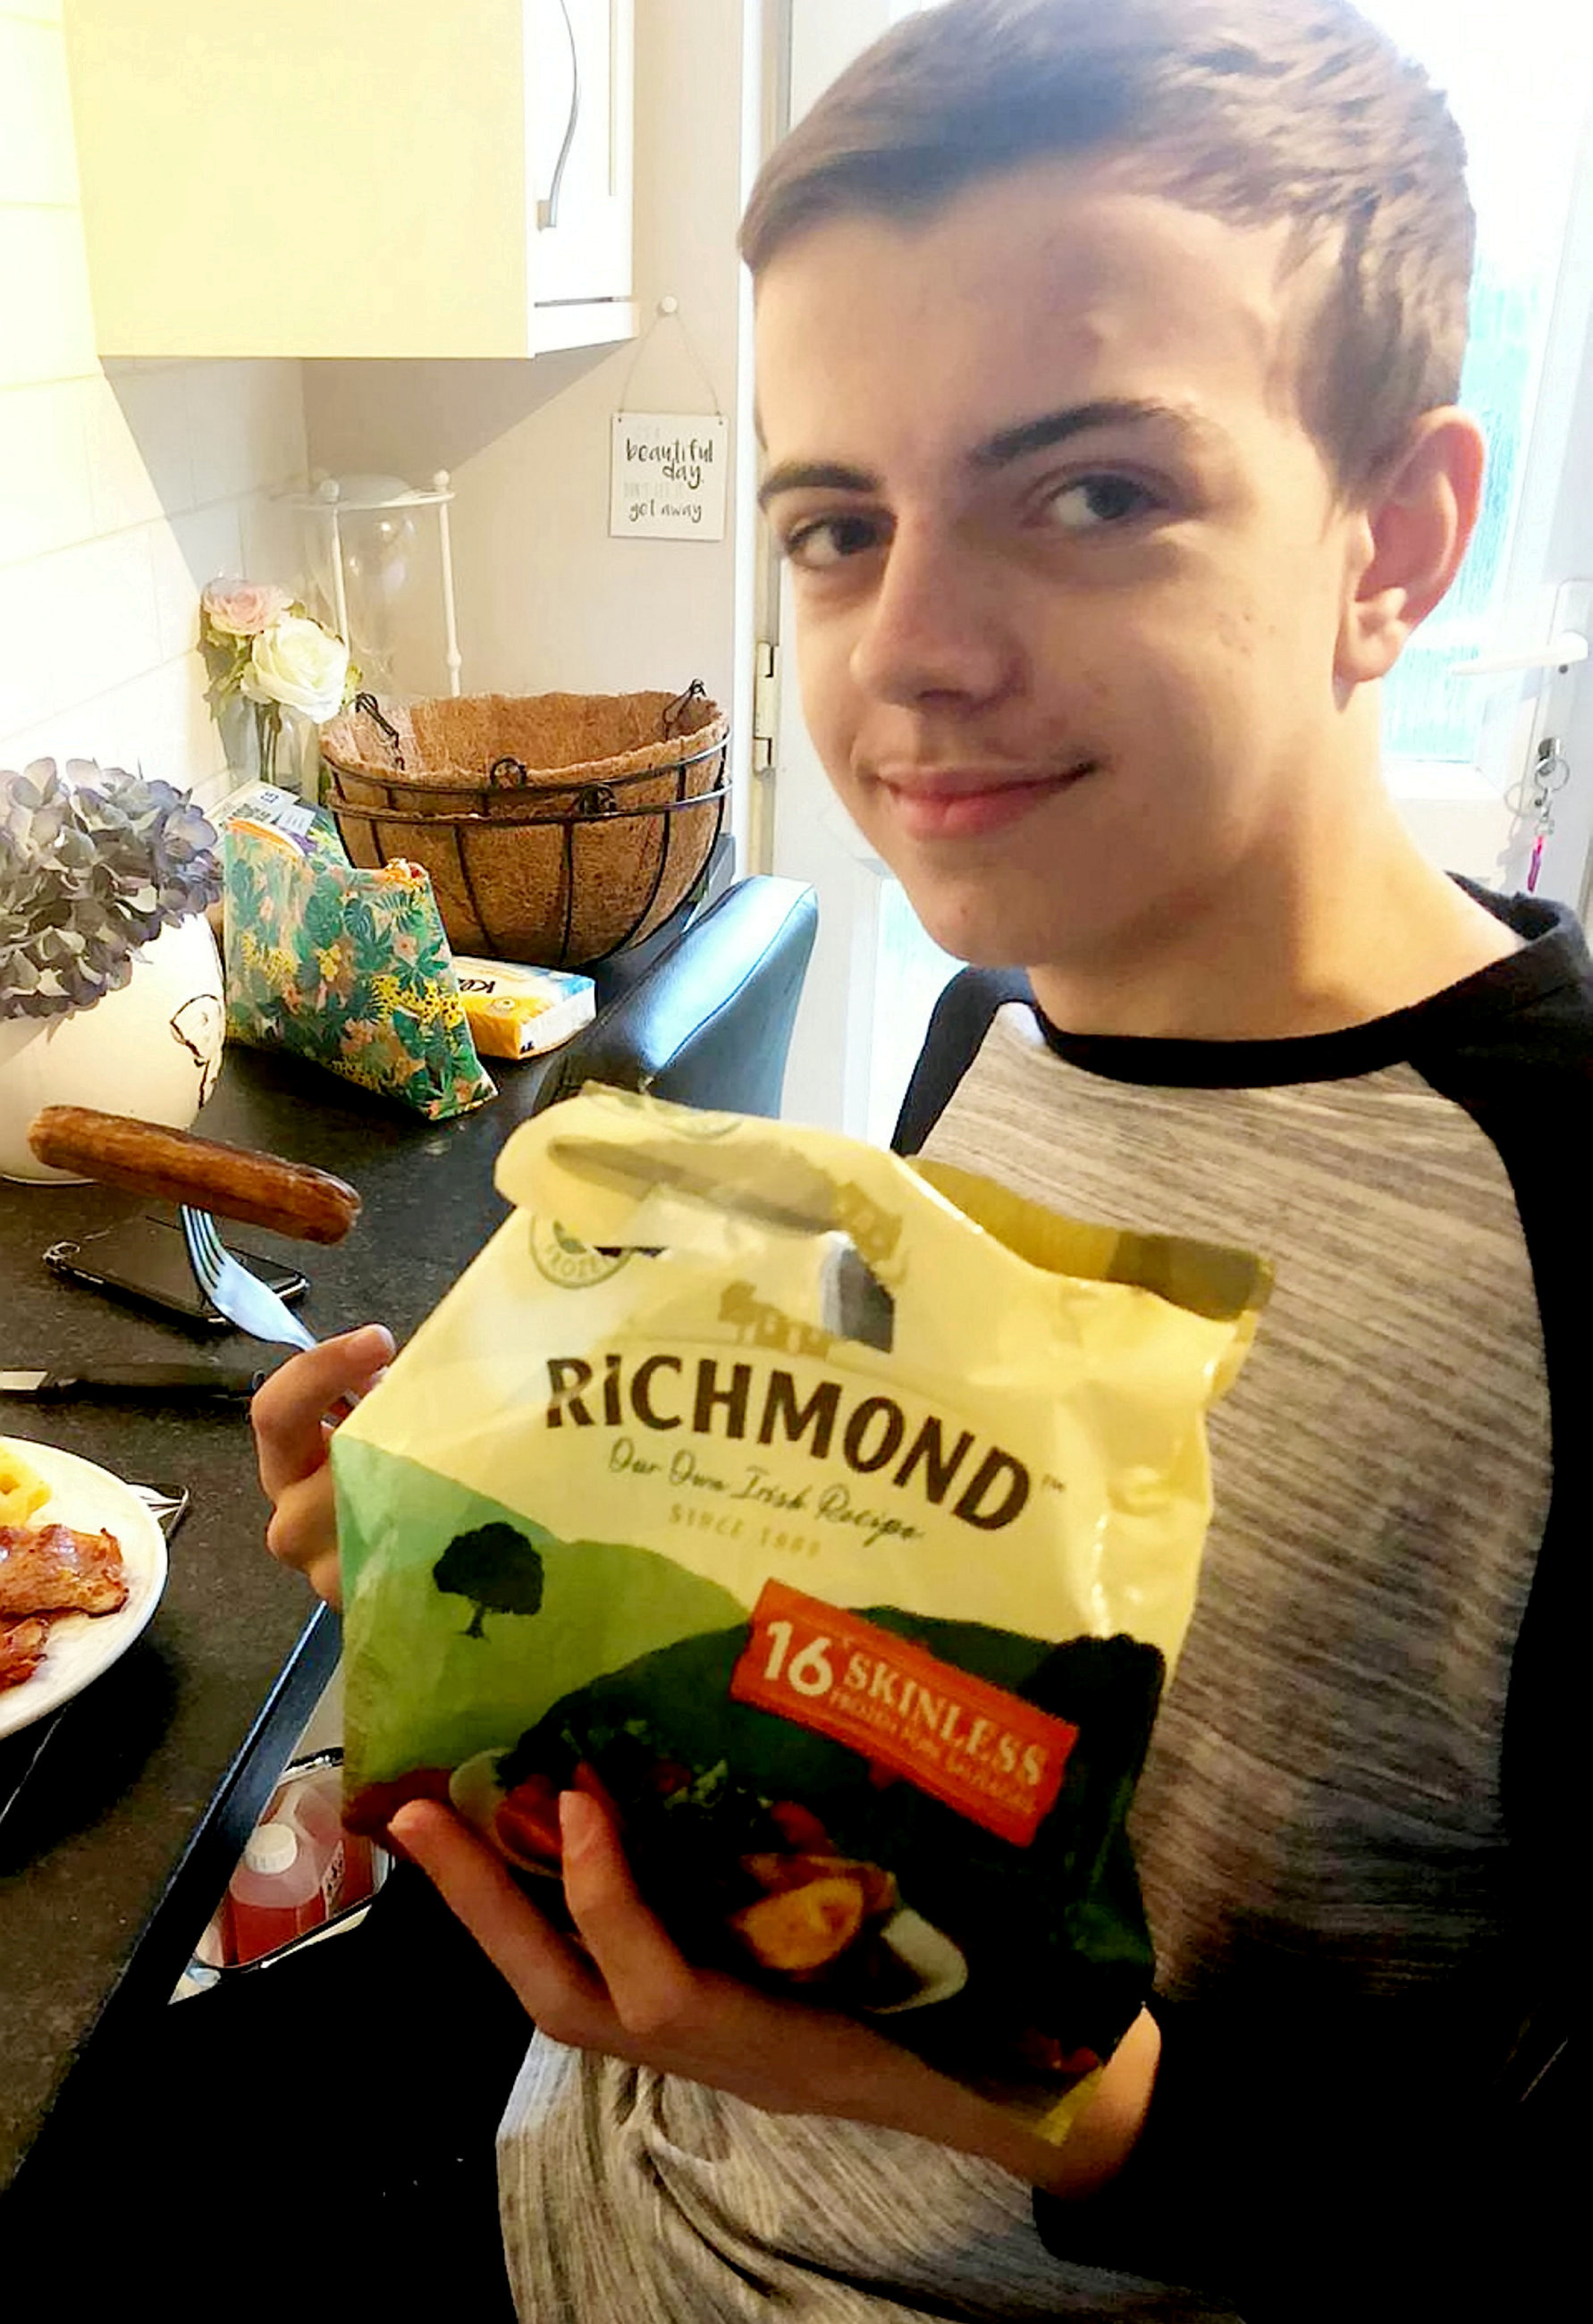 A teenage boy who has eaten nothing but SAUSAGES every mealtime for his entire life has been cured of his bizarre food phobia after being hypnotised over Facetime. Ben Simpson, 15, would refuse to try anything other than a bland diet of plain Richmonds bangers washed down with glasses of water. He developed his fear of food, known as ARFID, when mum Wendy Hughes, 55, tried to move him onto solid foods as a baby. She has since forked out £60 a month on Richmonds skinless sausages - with Ben getting through four every meal and several packs of 16 each week. Frustrated Wendy became so concerned about her son's health she turned to Cognitive Behavioural Hypnotherapist David Kilmurry for help. And she was left amazed after Ben began trying new foods for the first rime following just one hypnotherapy session on a Facetime phone call.